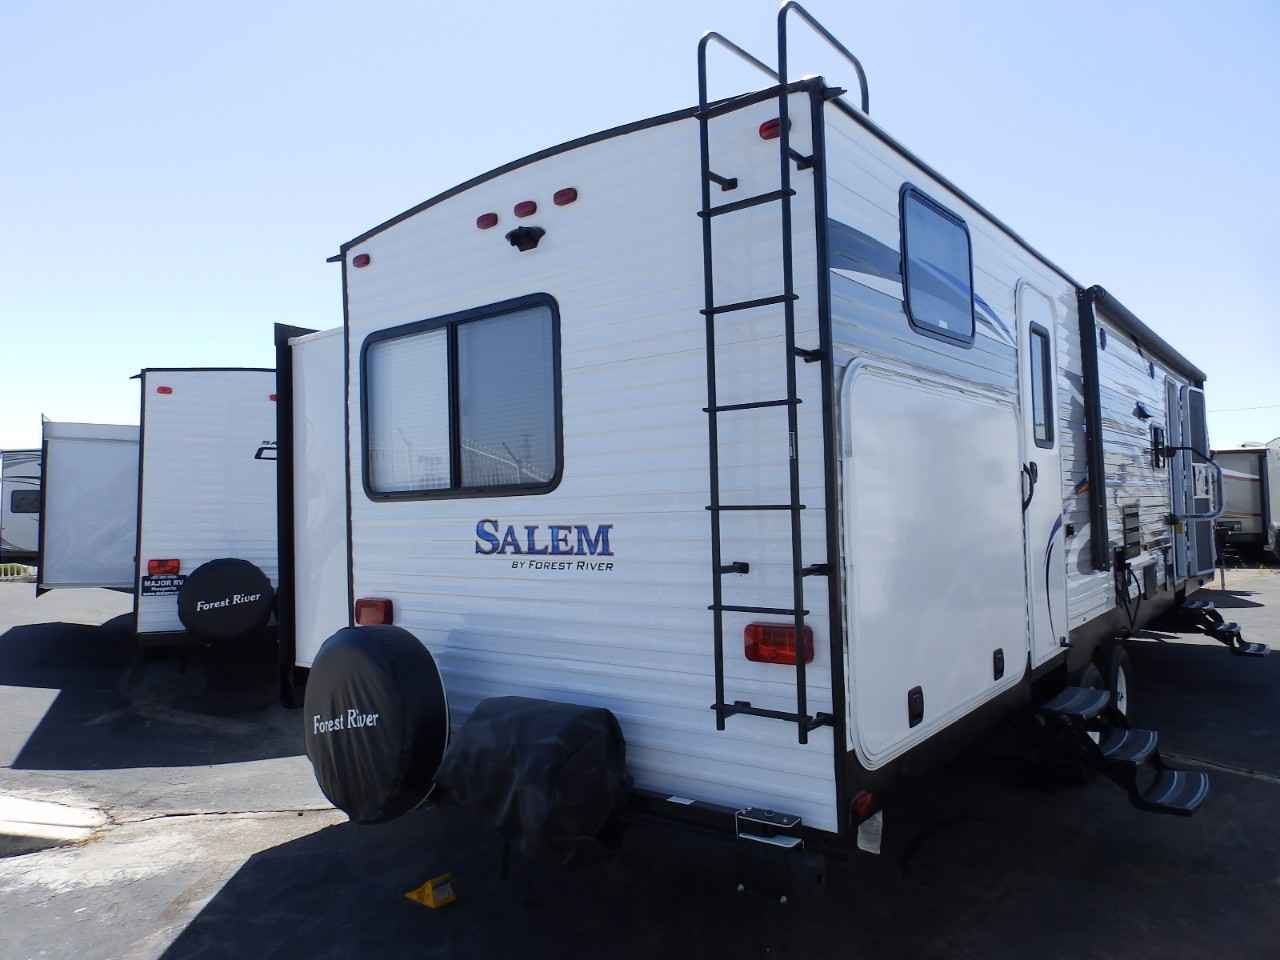 travel trailers with rear kitchen stainless steel tables 2018 new forest river salem 32bhds 2 slides exterior